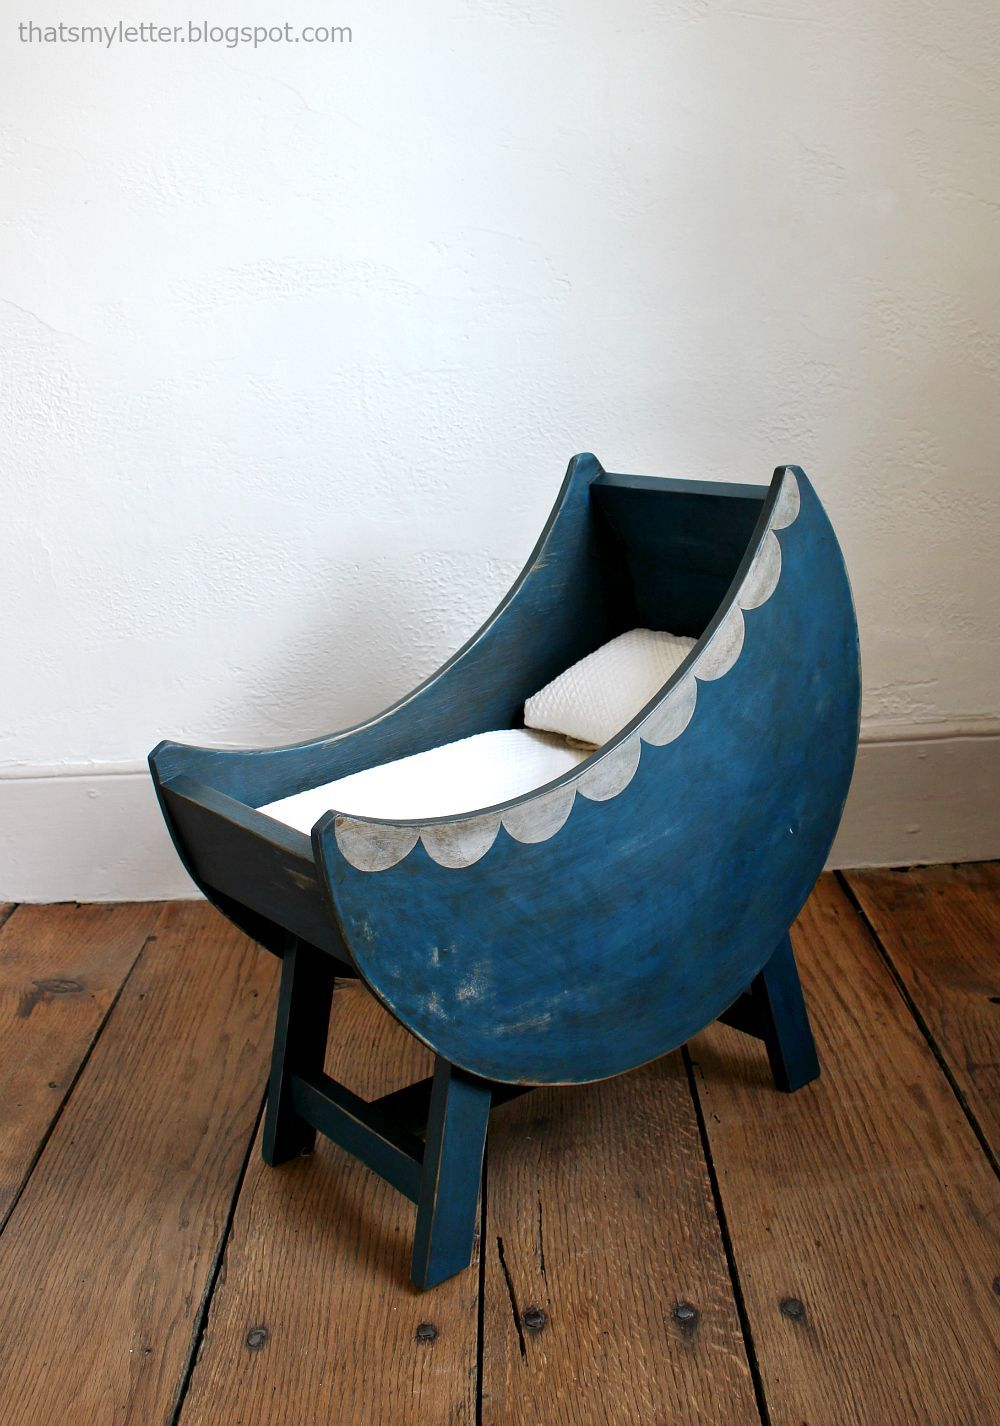 Ana White | Build a Baby Doll Furniture Moon Bassinet | Free and ...